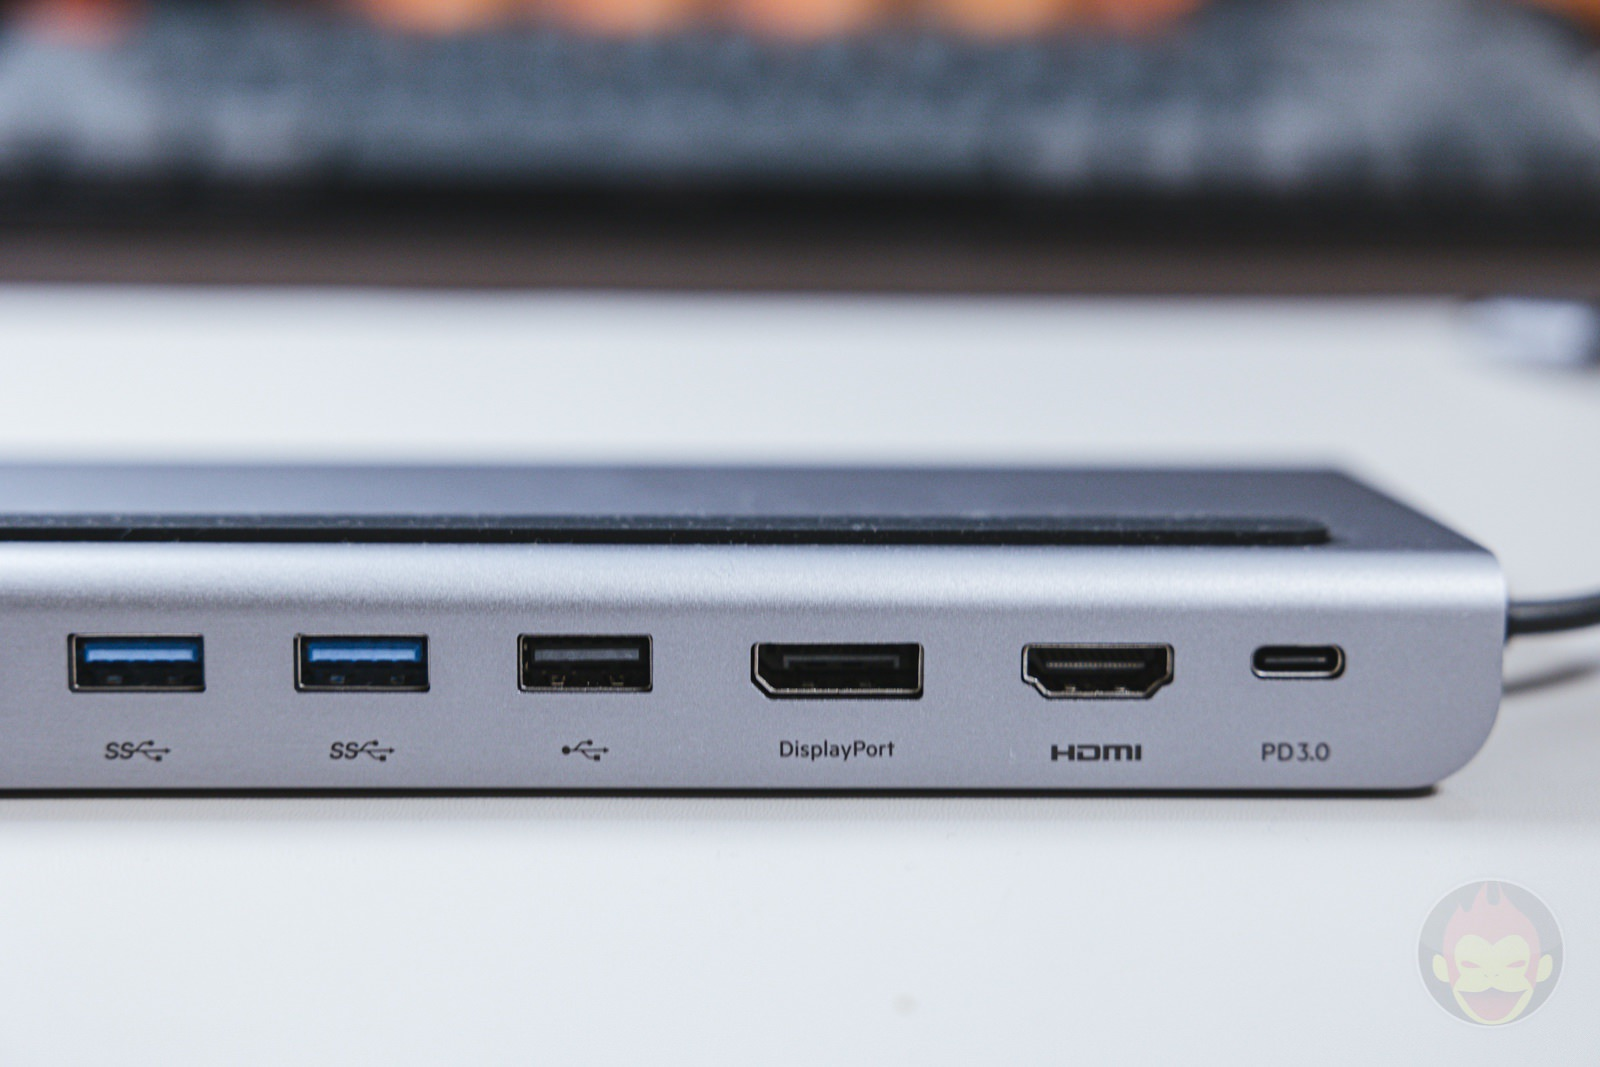 CONNECT USB C 11 in 1 MutliPort Dock Review 01